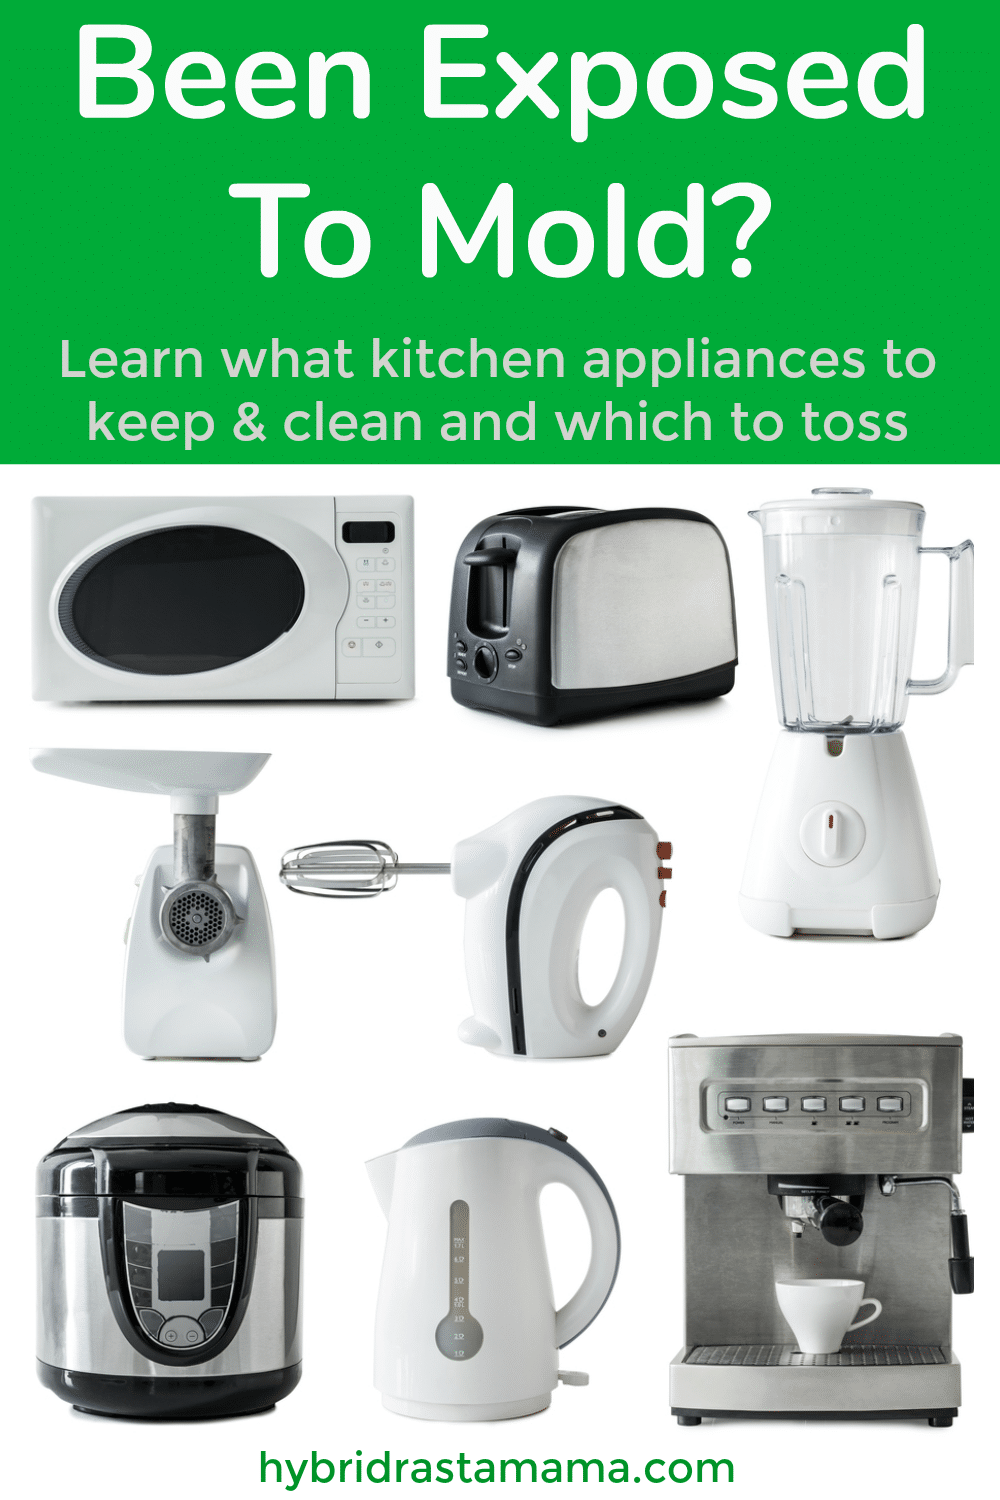 A collage of kitchen appliances that have been exposed to mold